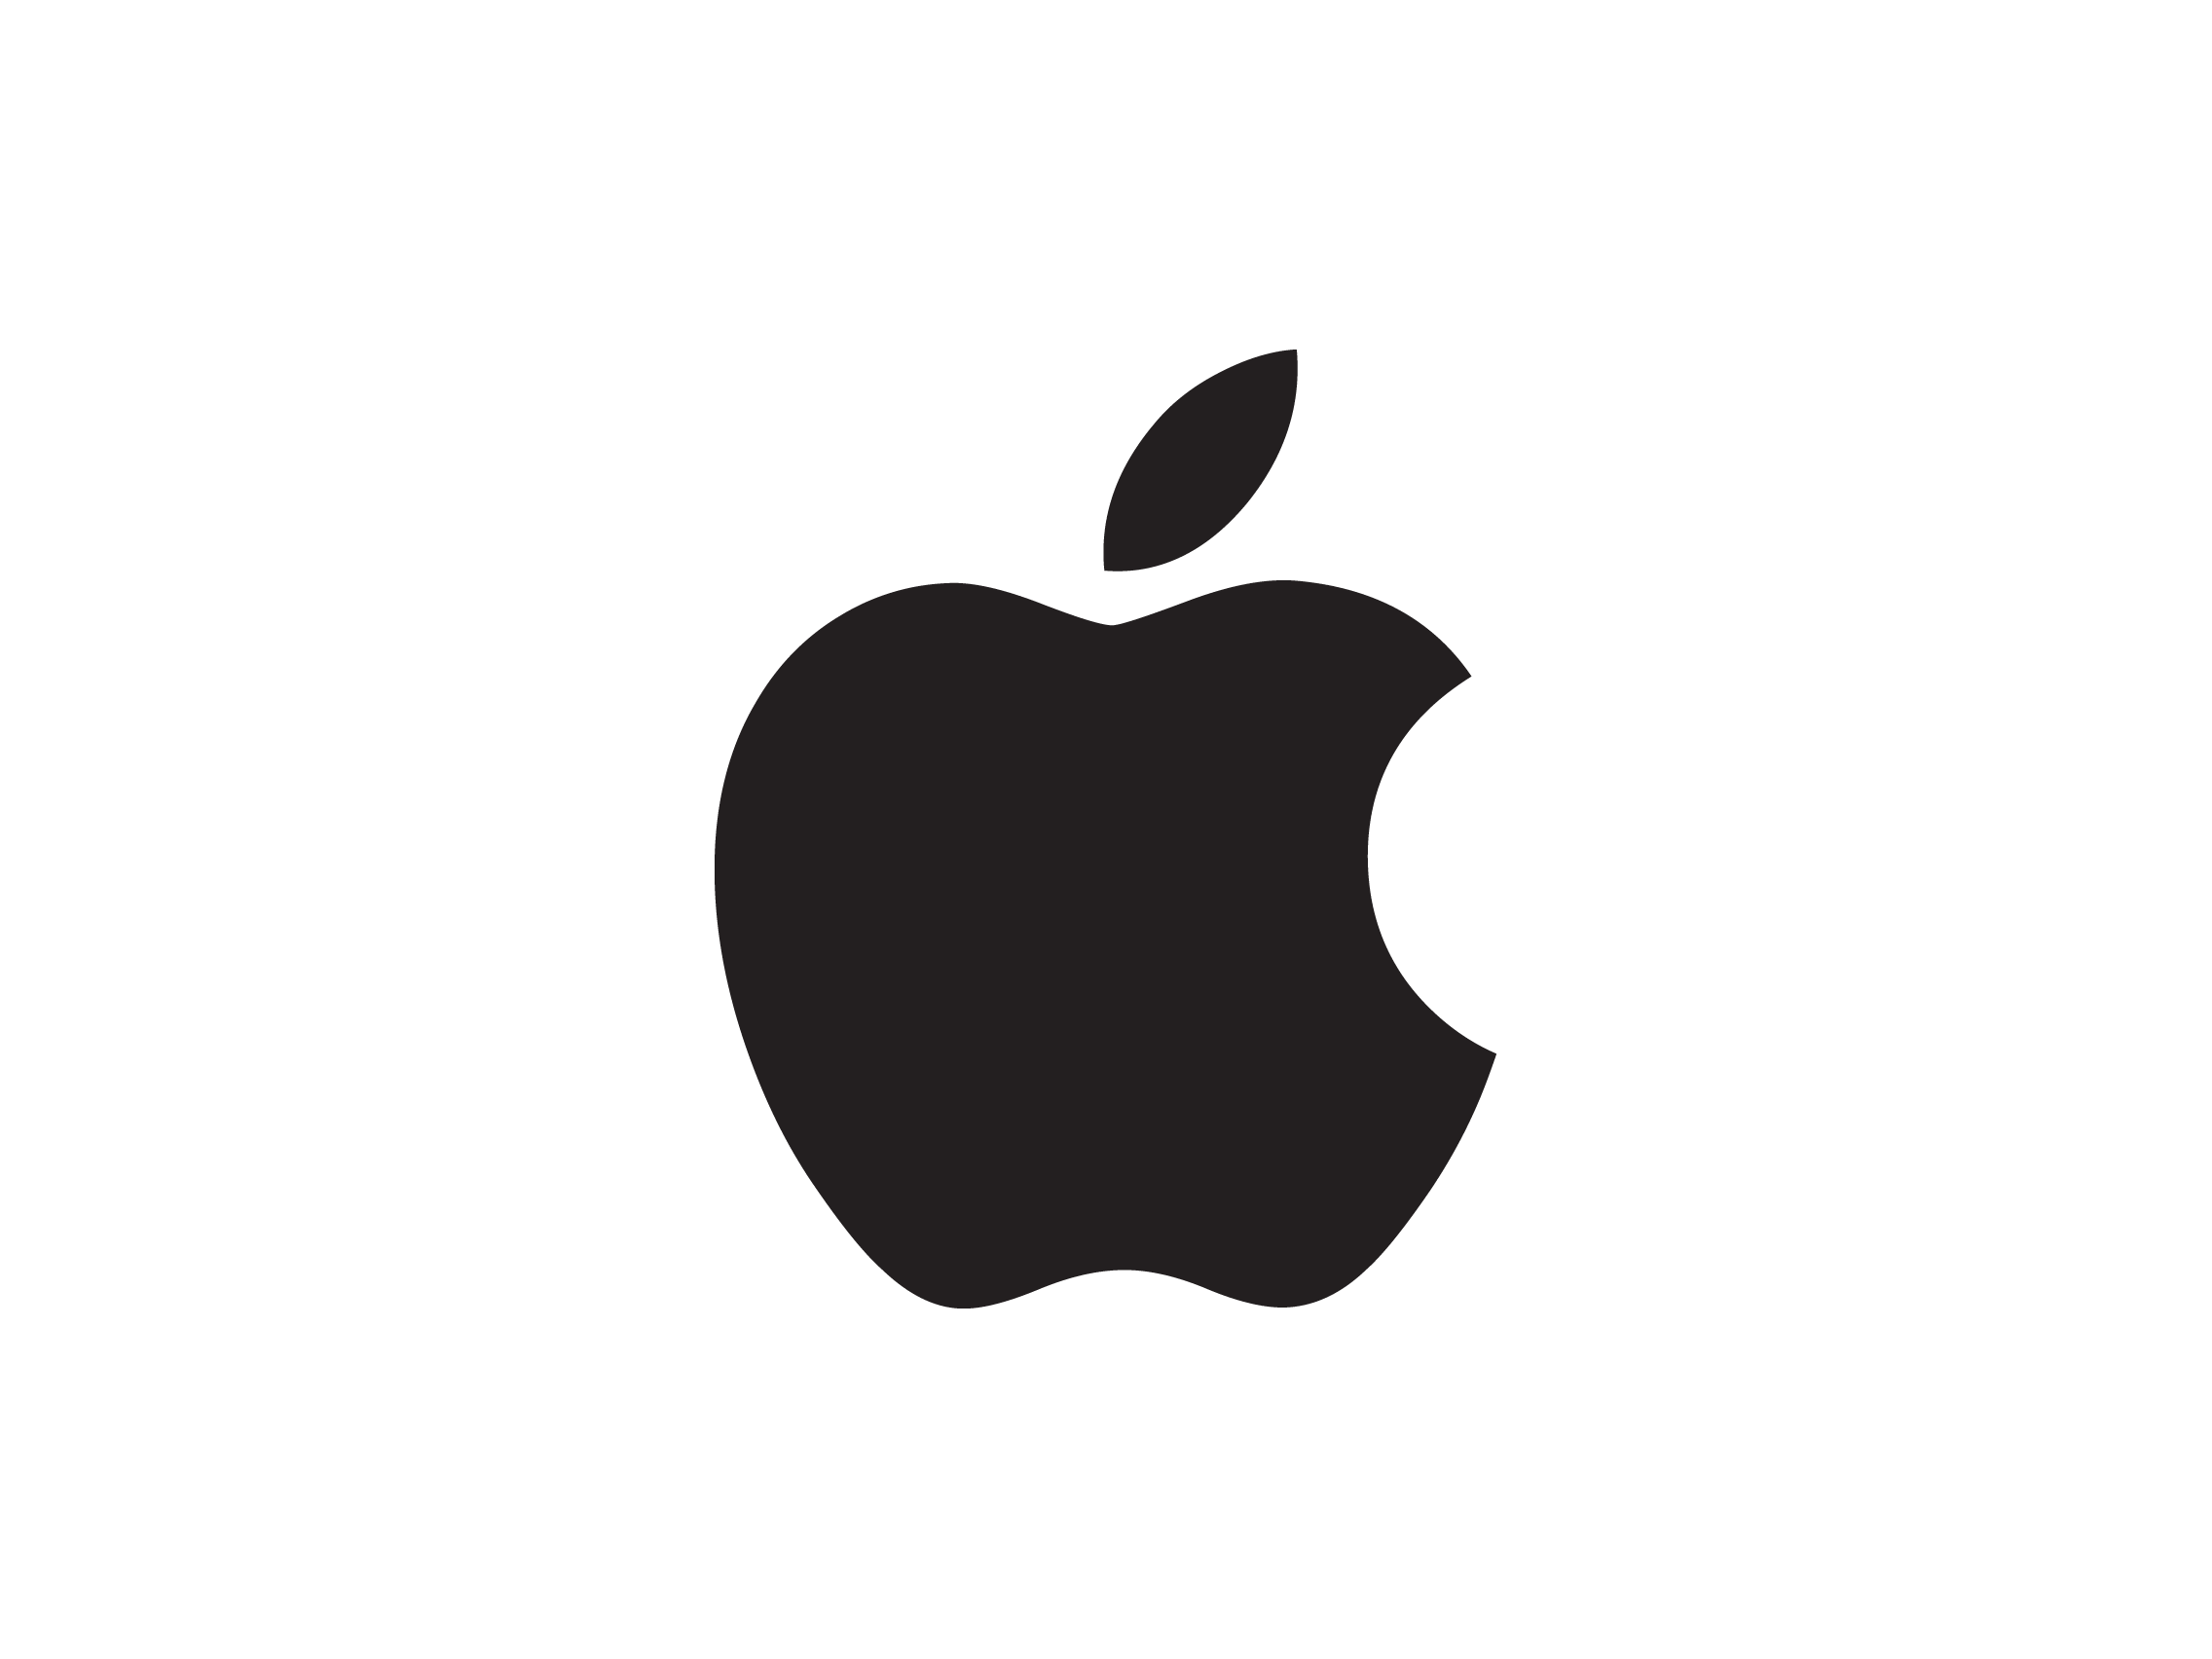 apple logo black how to start a clothing company